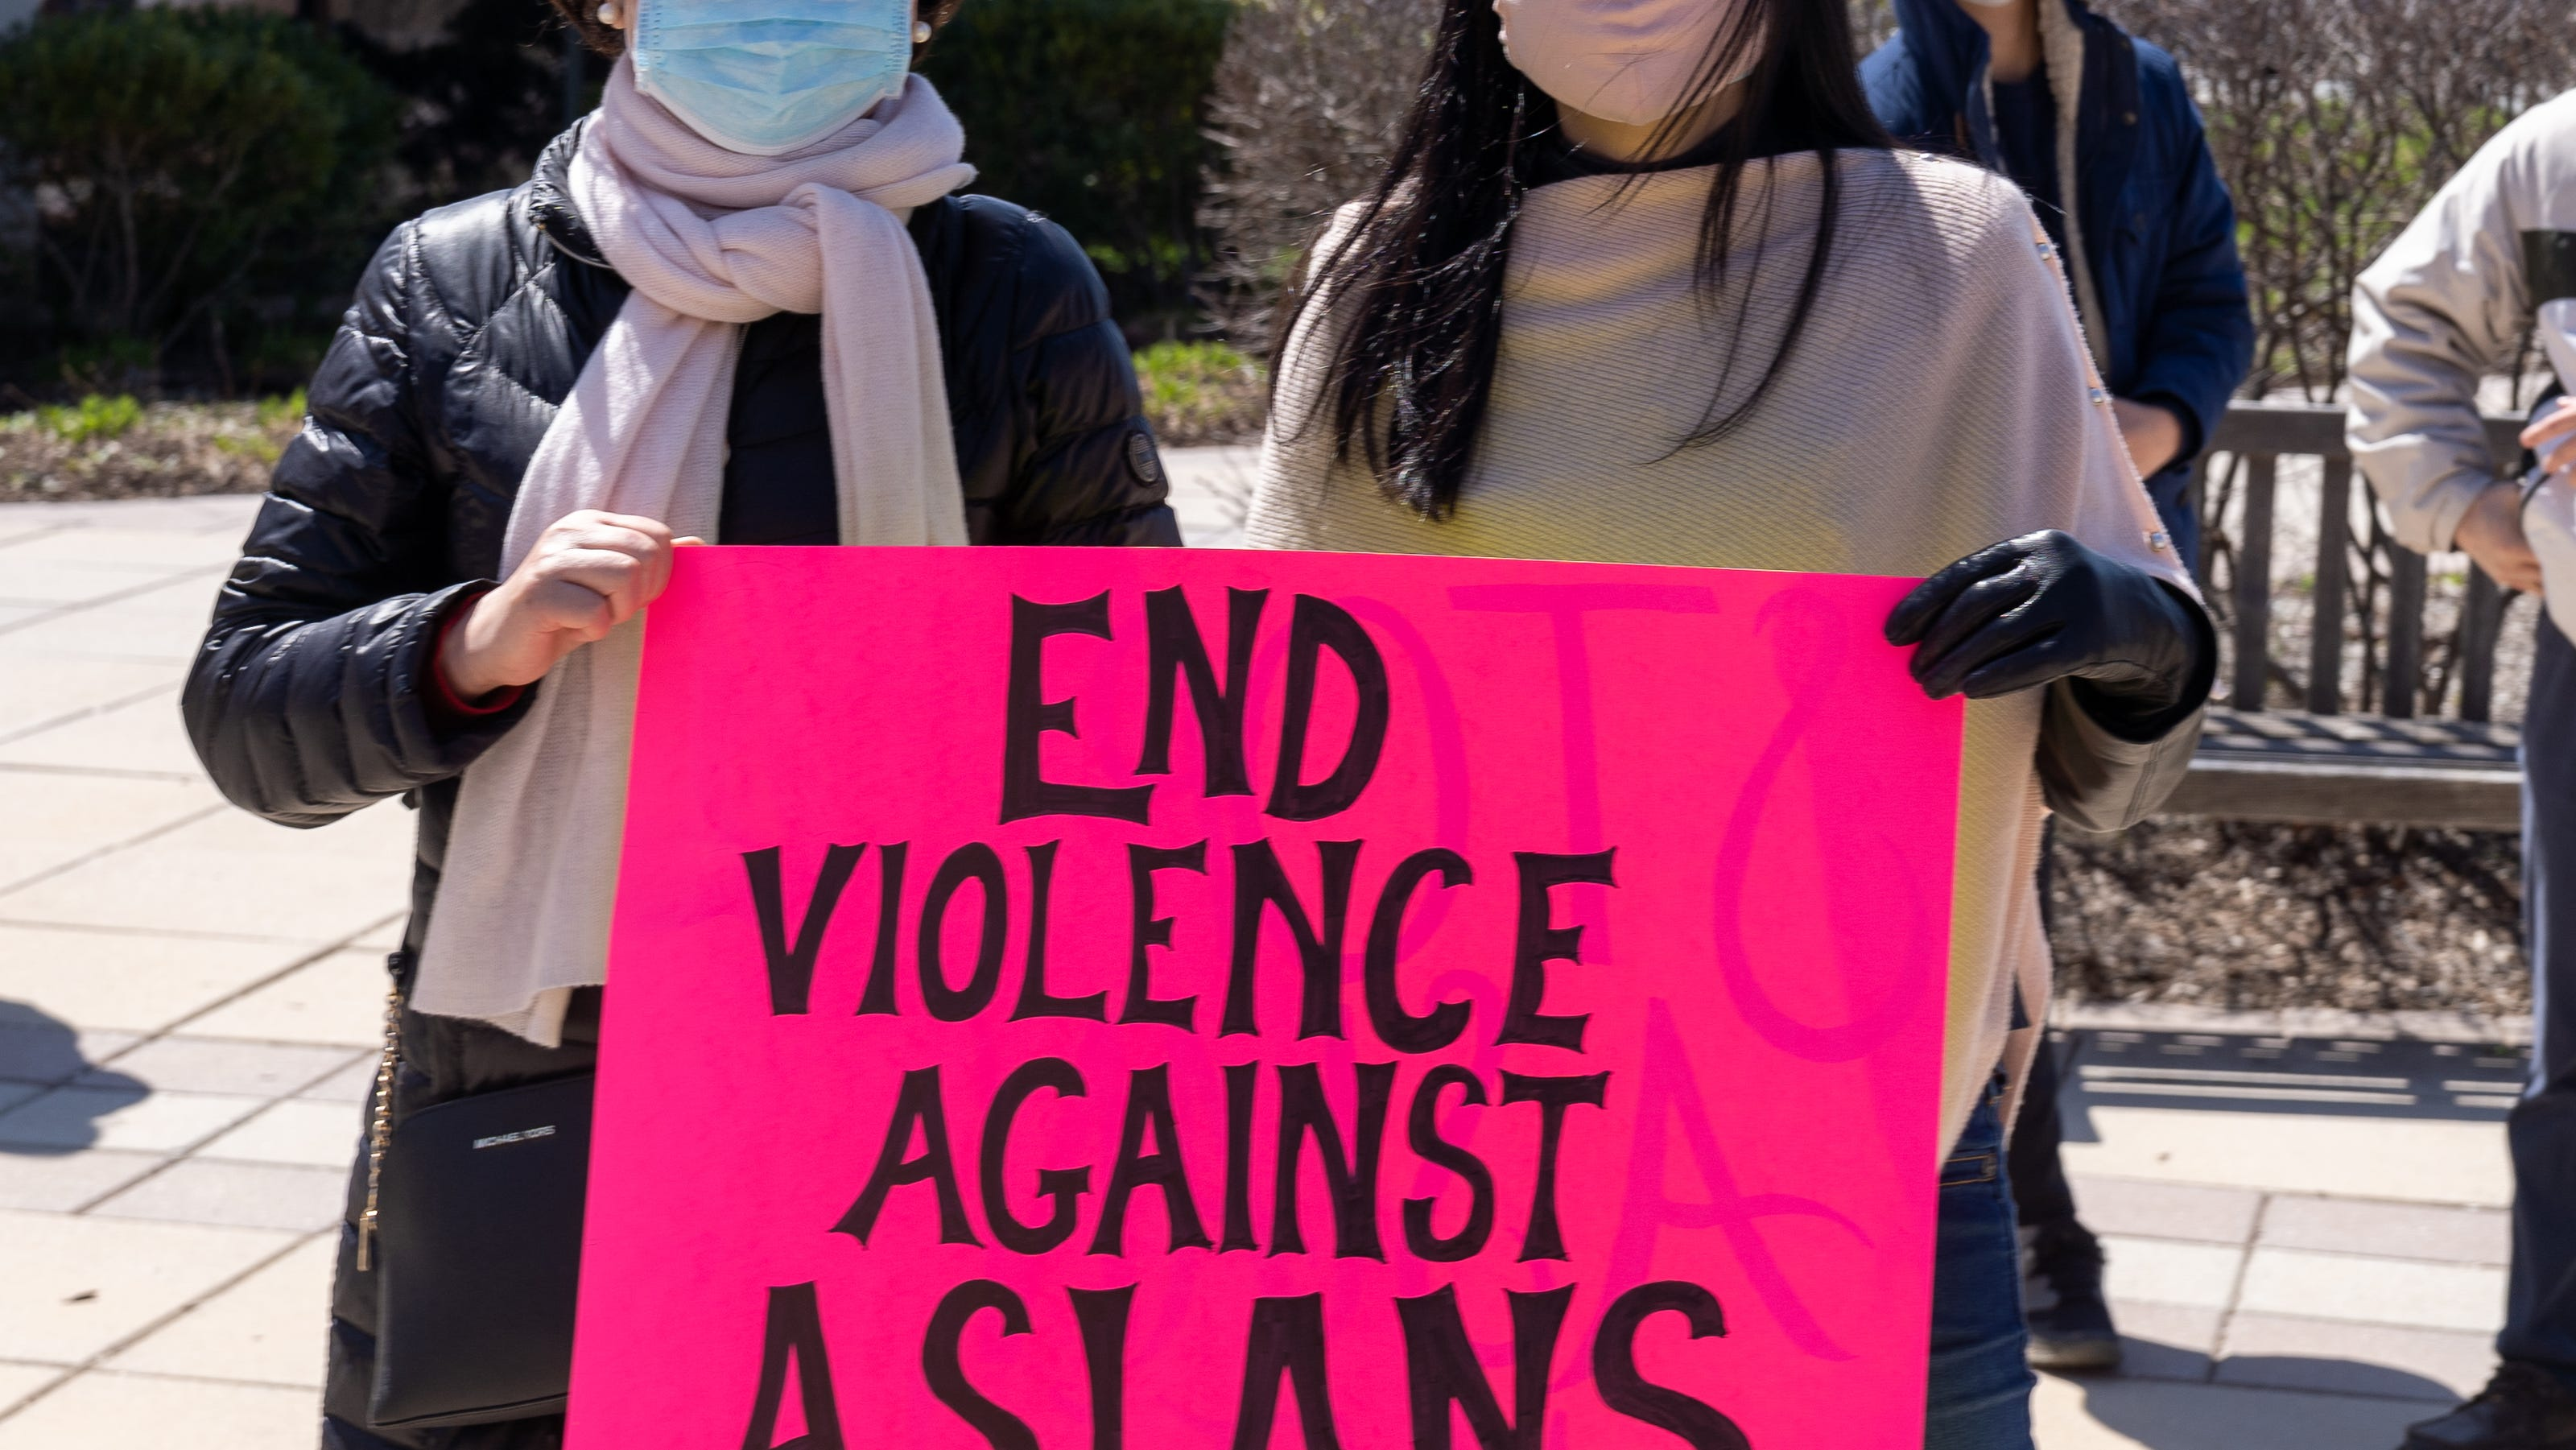 www.mycentraljersey.com: #StopAsianHate rally calls for a stop of hate crimes against Asian-Americans